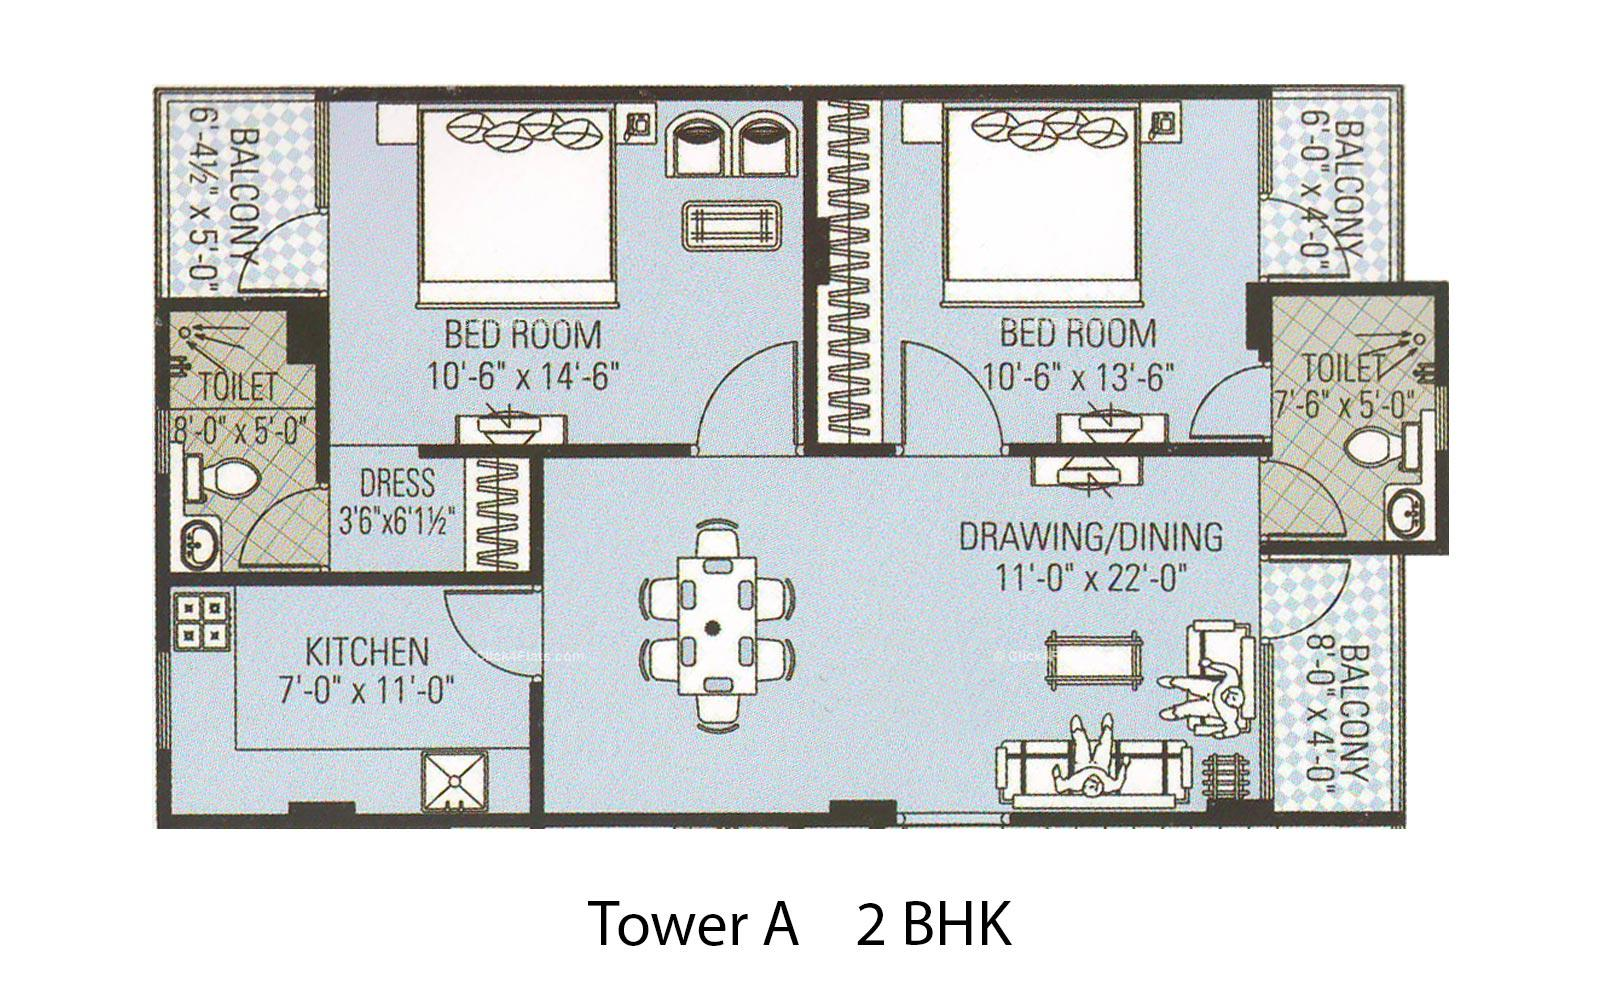 Amour Tower 2 BHK